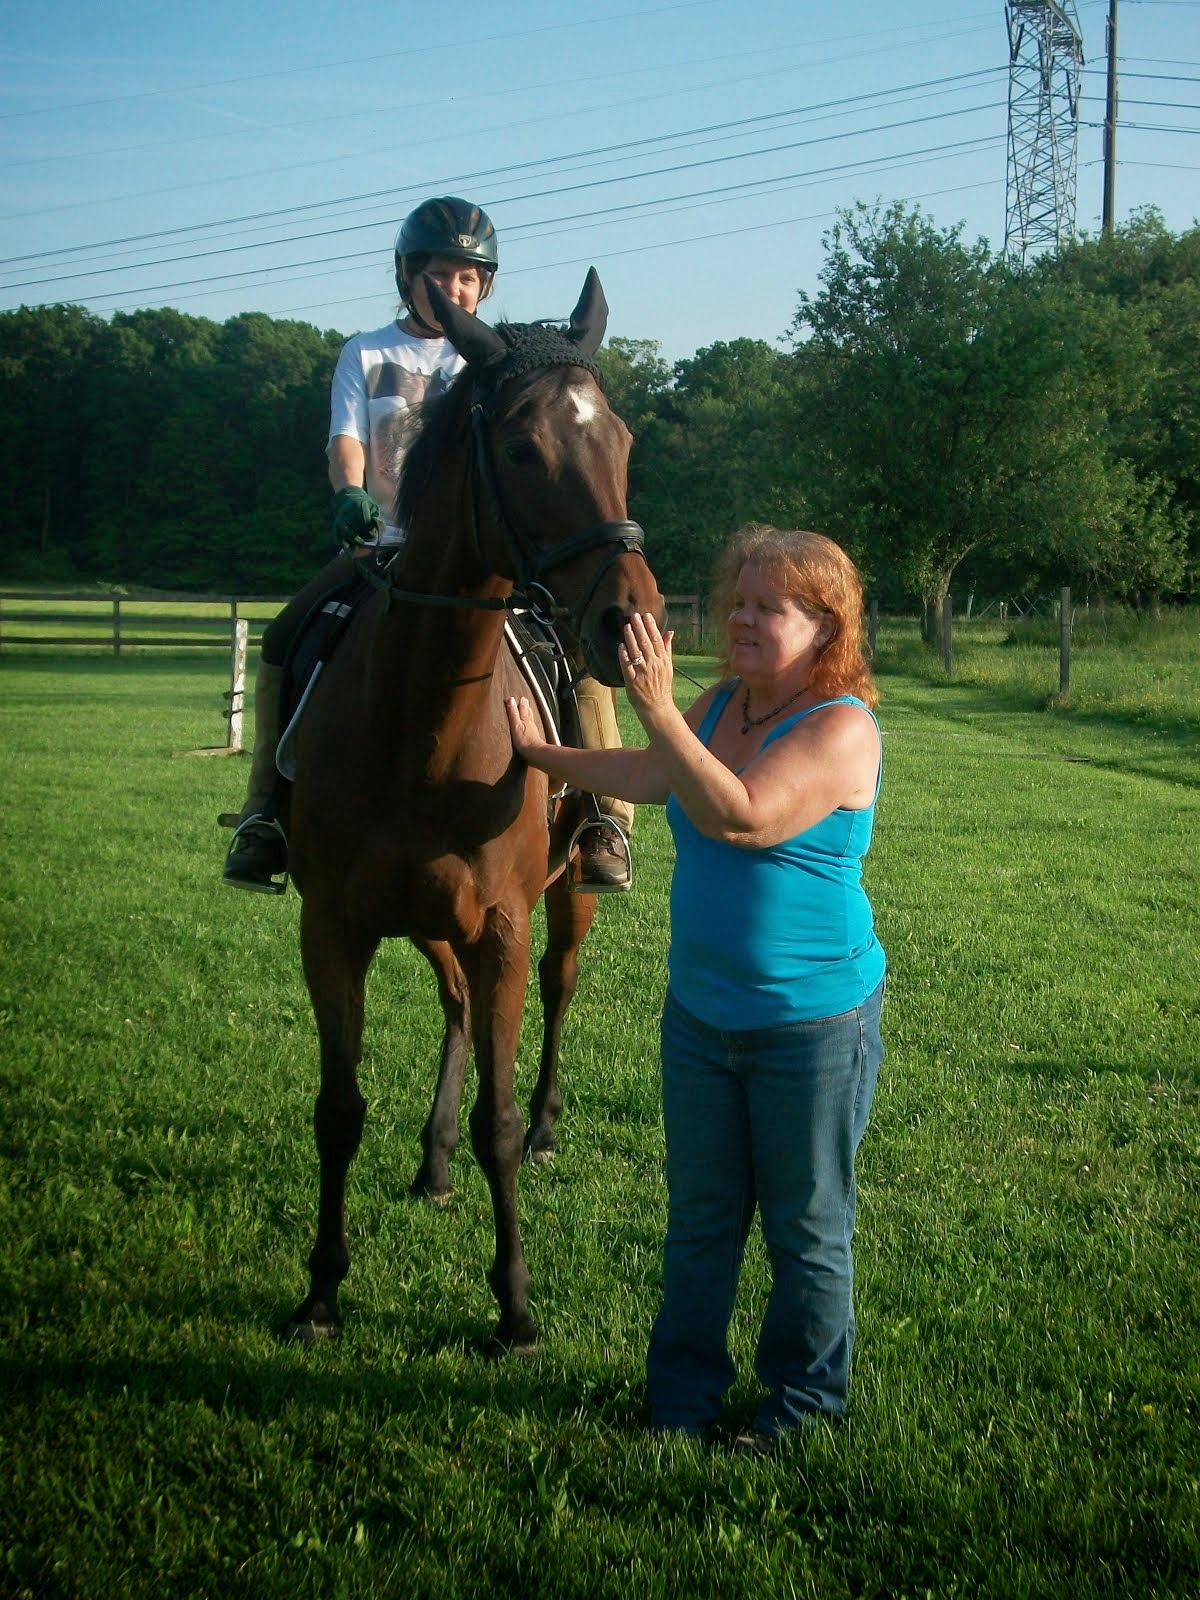 Me standing next to Patty on her horse